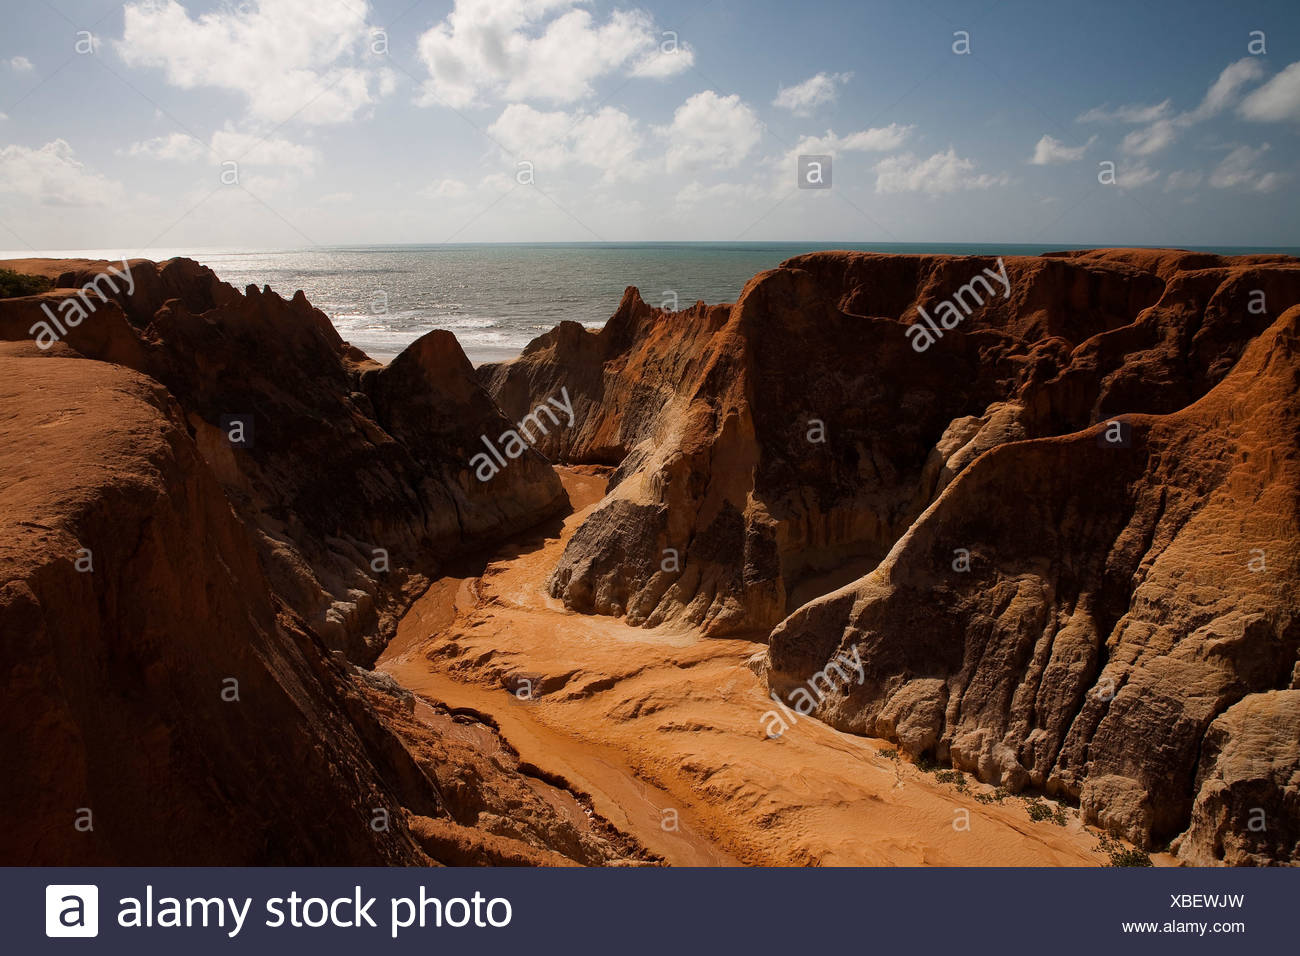 Morro Branco beach cliffs and labyrinths, Ceara State, Northeast Brazil. - Stock Image